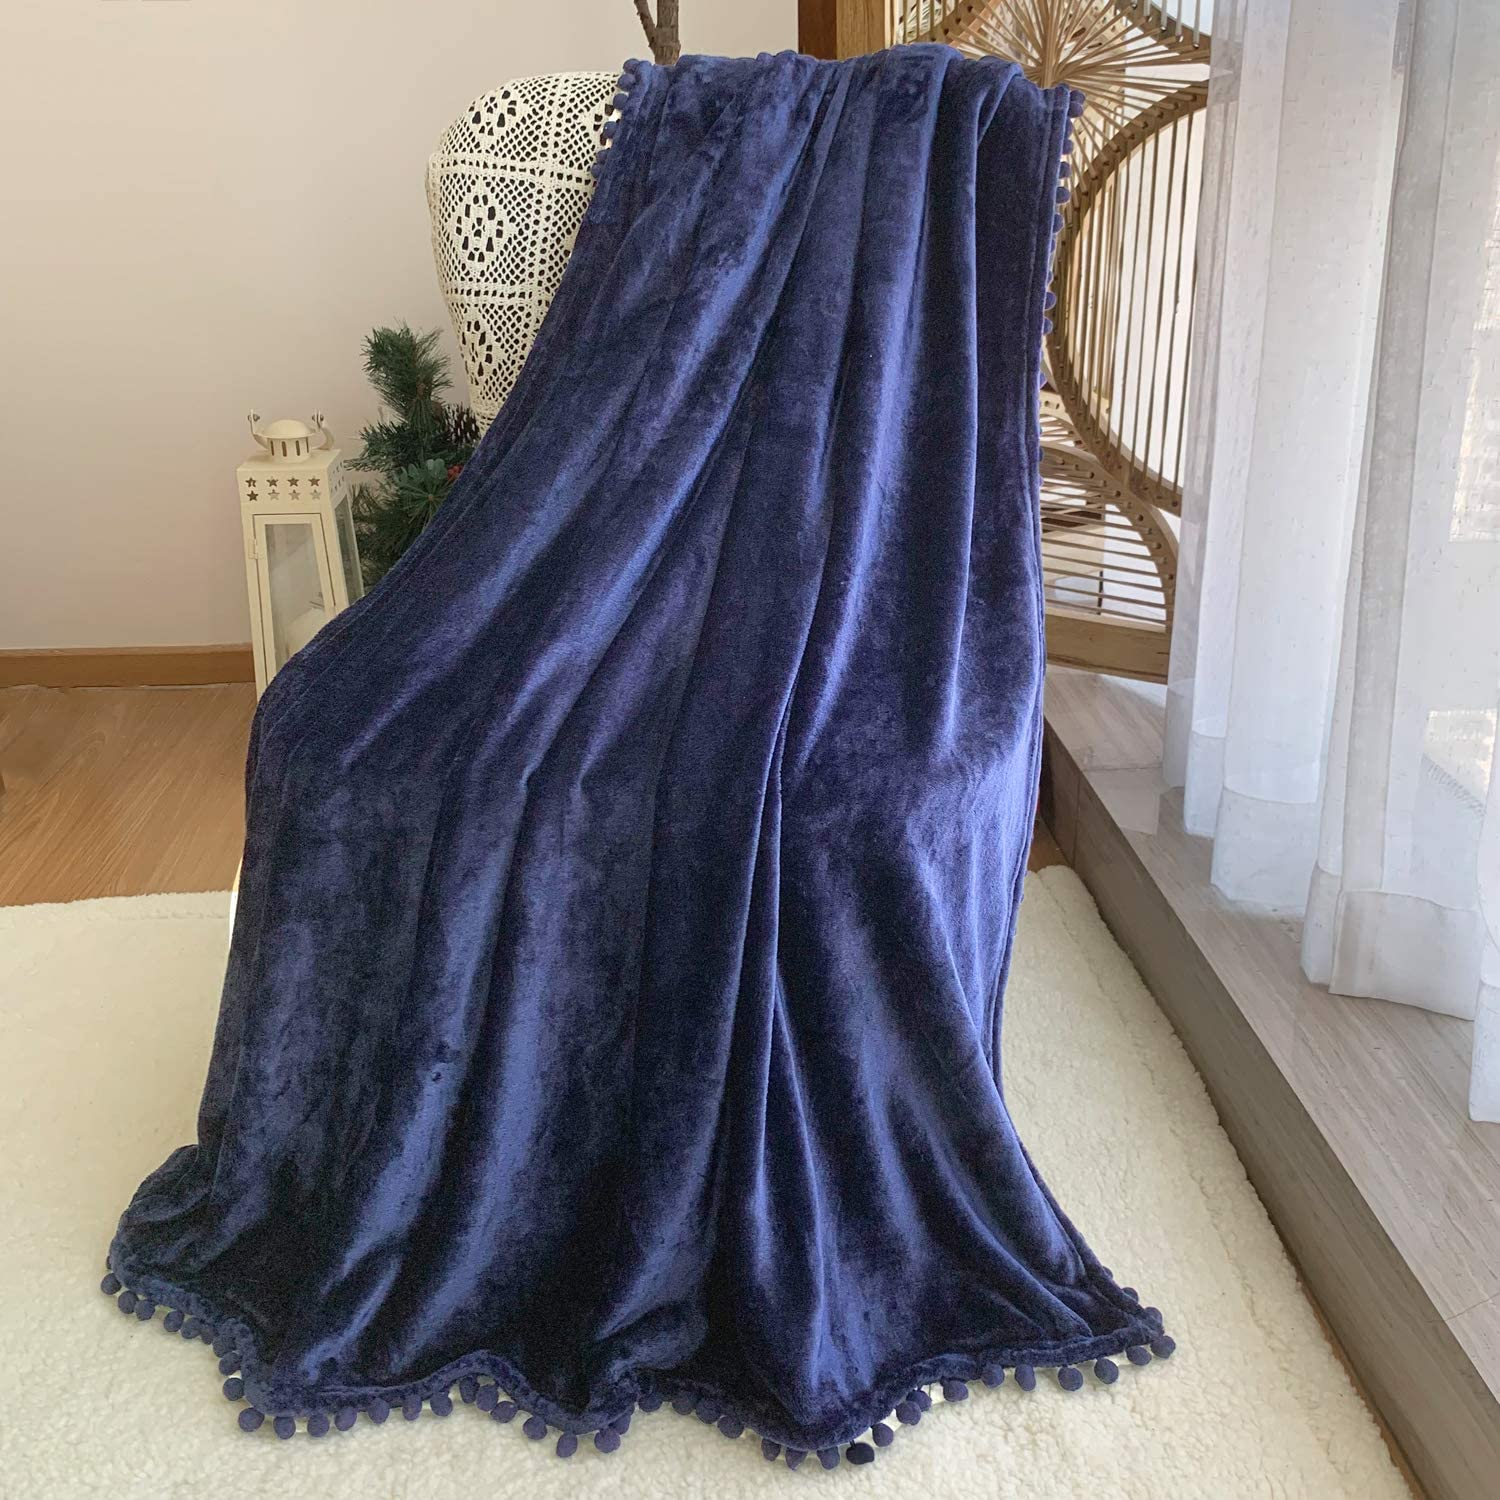 FANSIY Flannel Throw Blanket with Pompom Tassel Cozy Bed Blanket Soft Blanket for Couch Sofa Home Decor(Dark Blue,51x63)